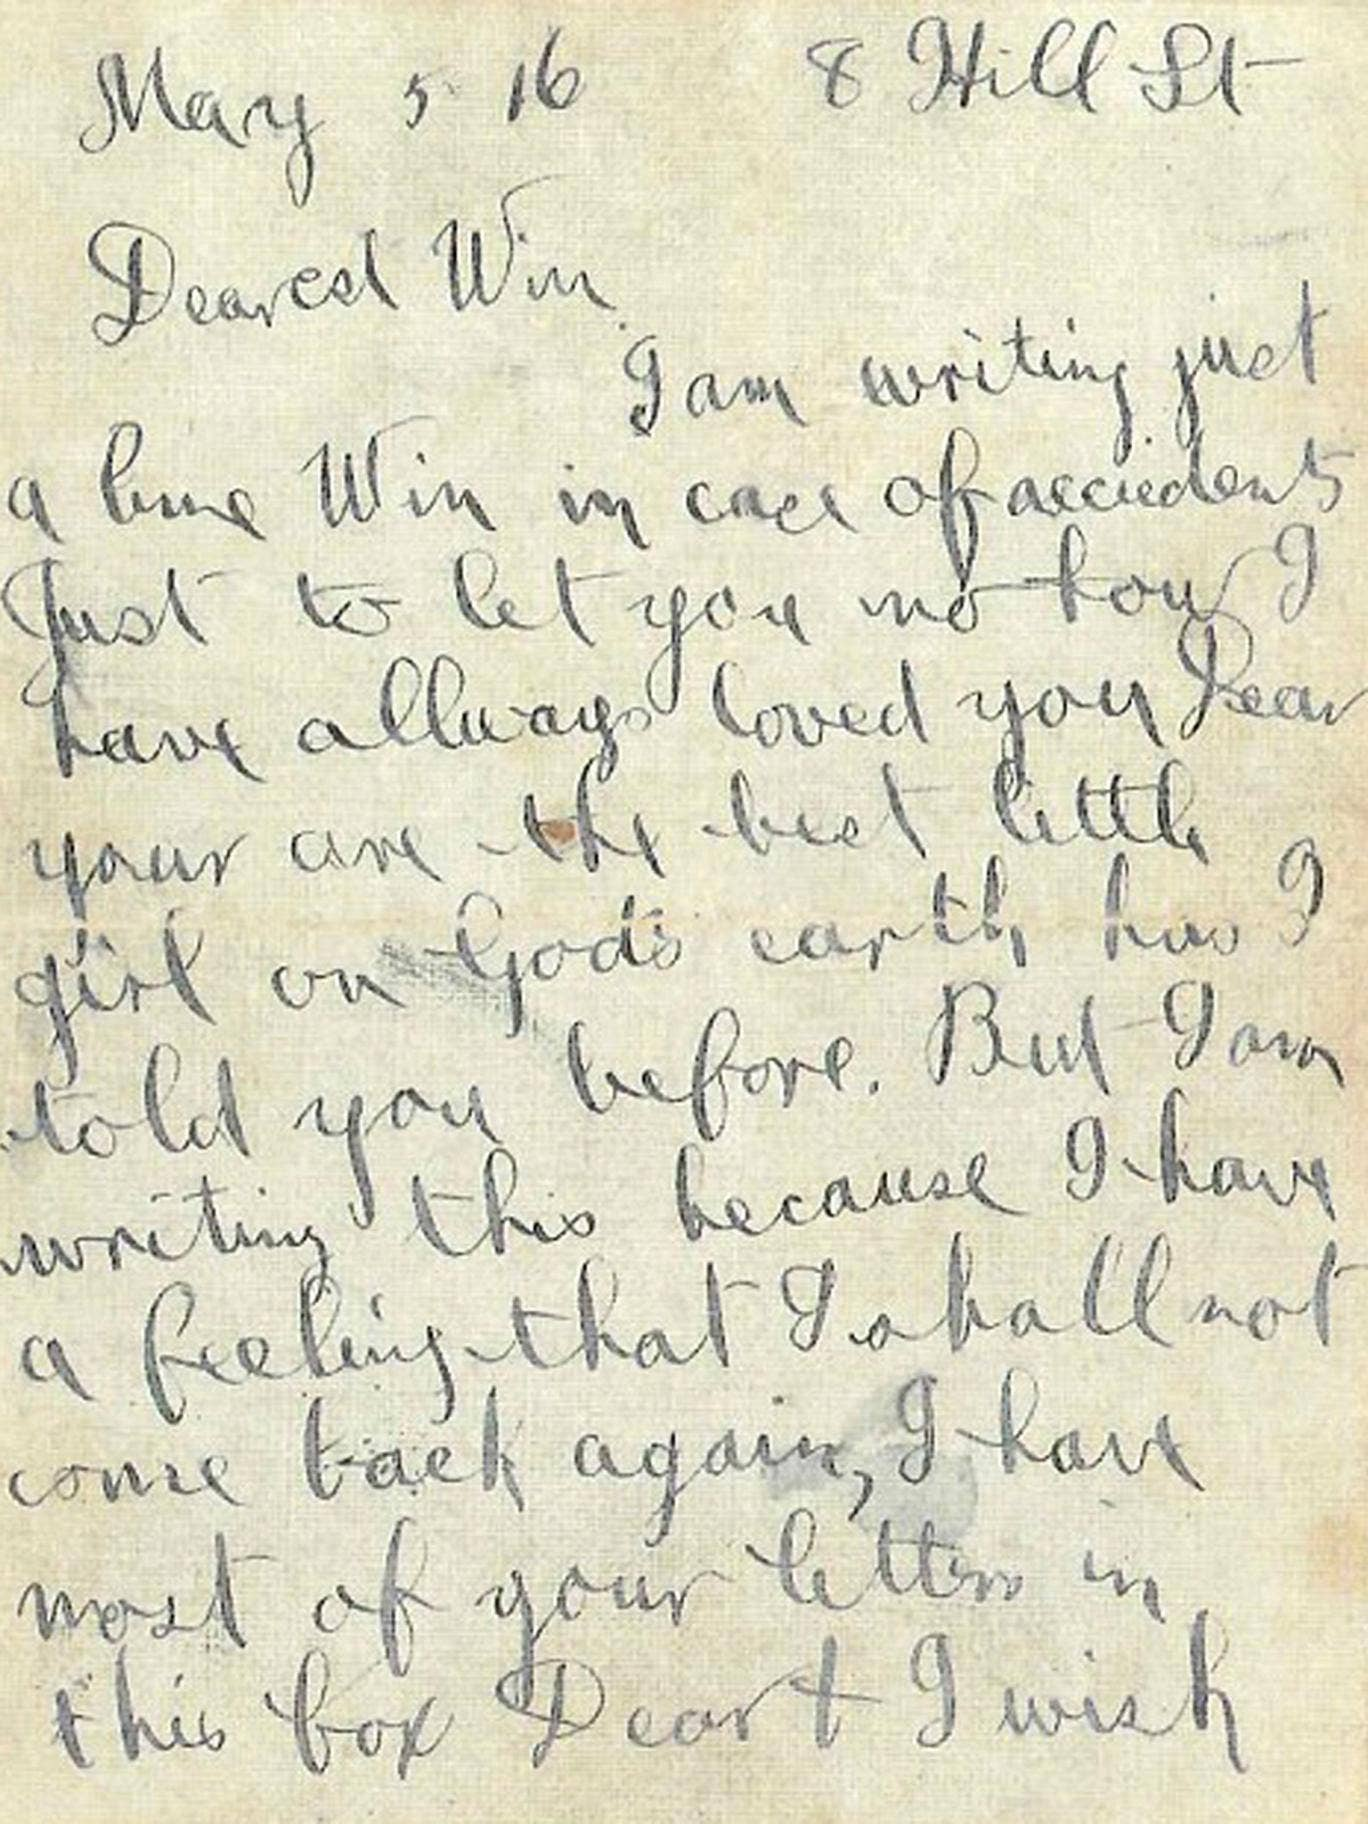 The tear-stained letter